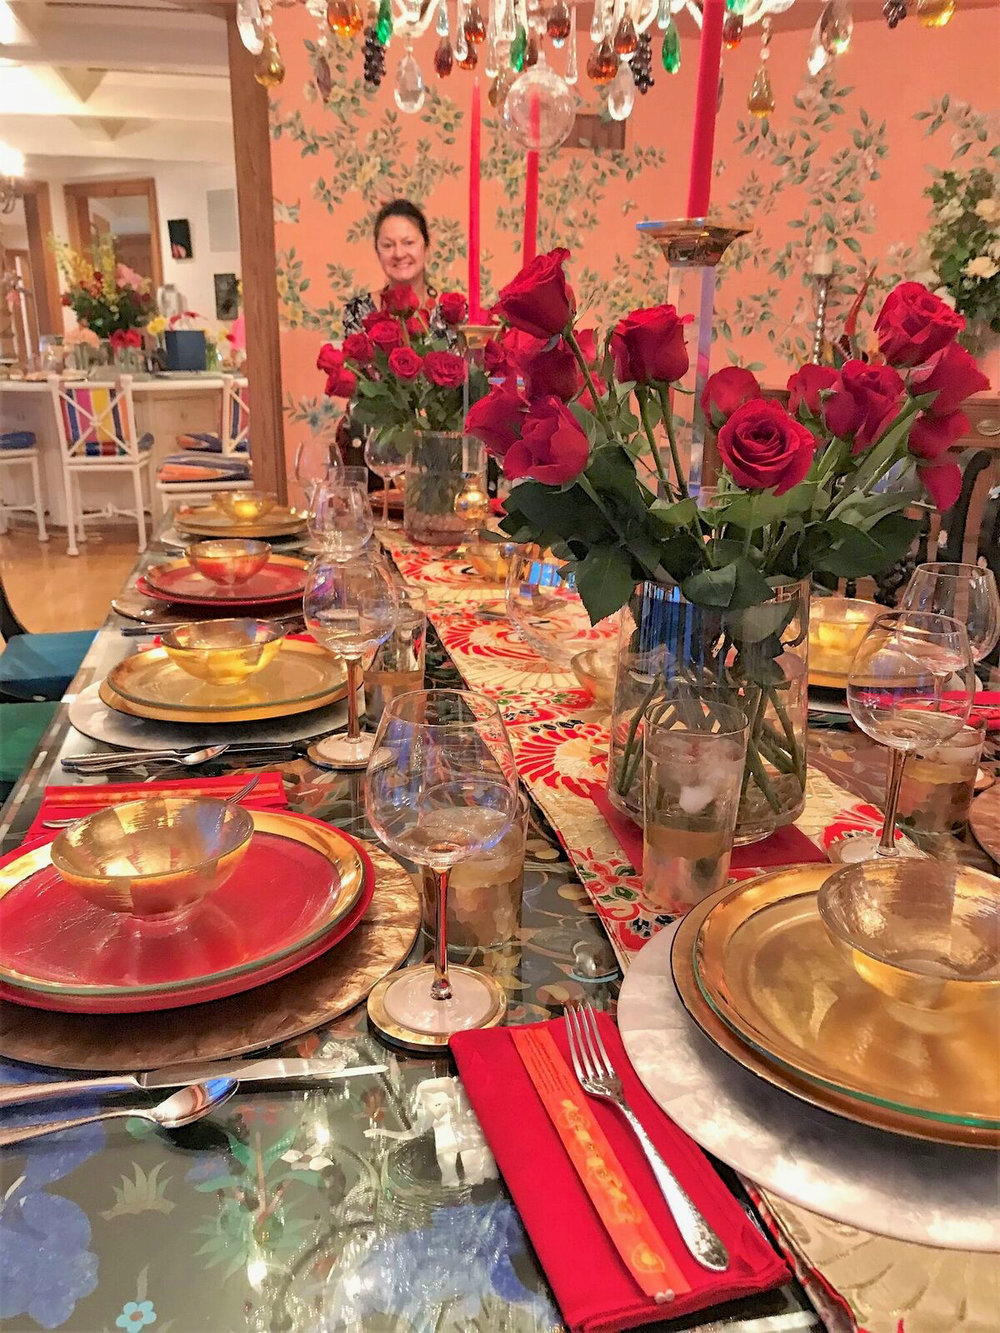 teri_dining_tabletop_aroundtheworldin80days_W3Bookclub_spiritedtable_photo2.jpg